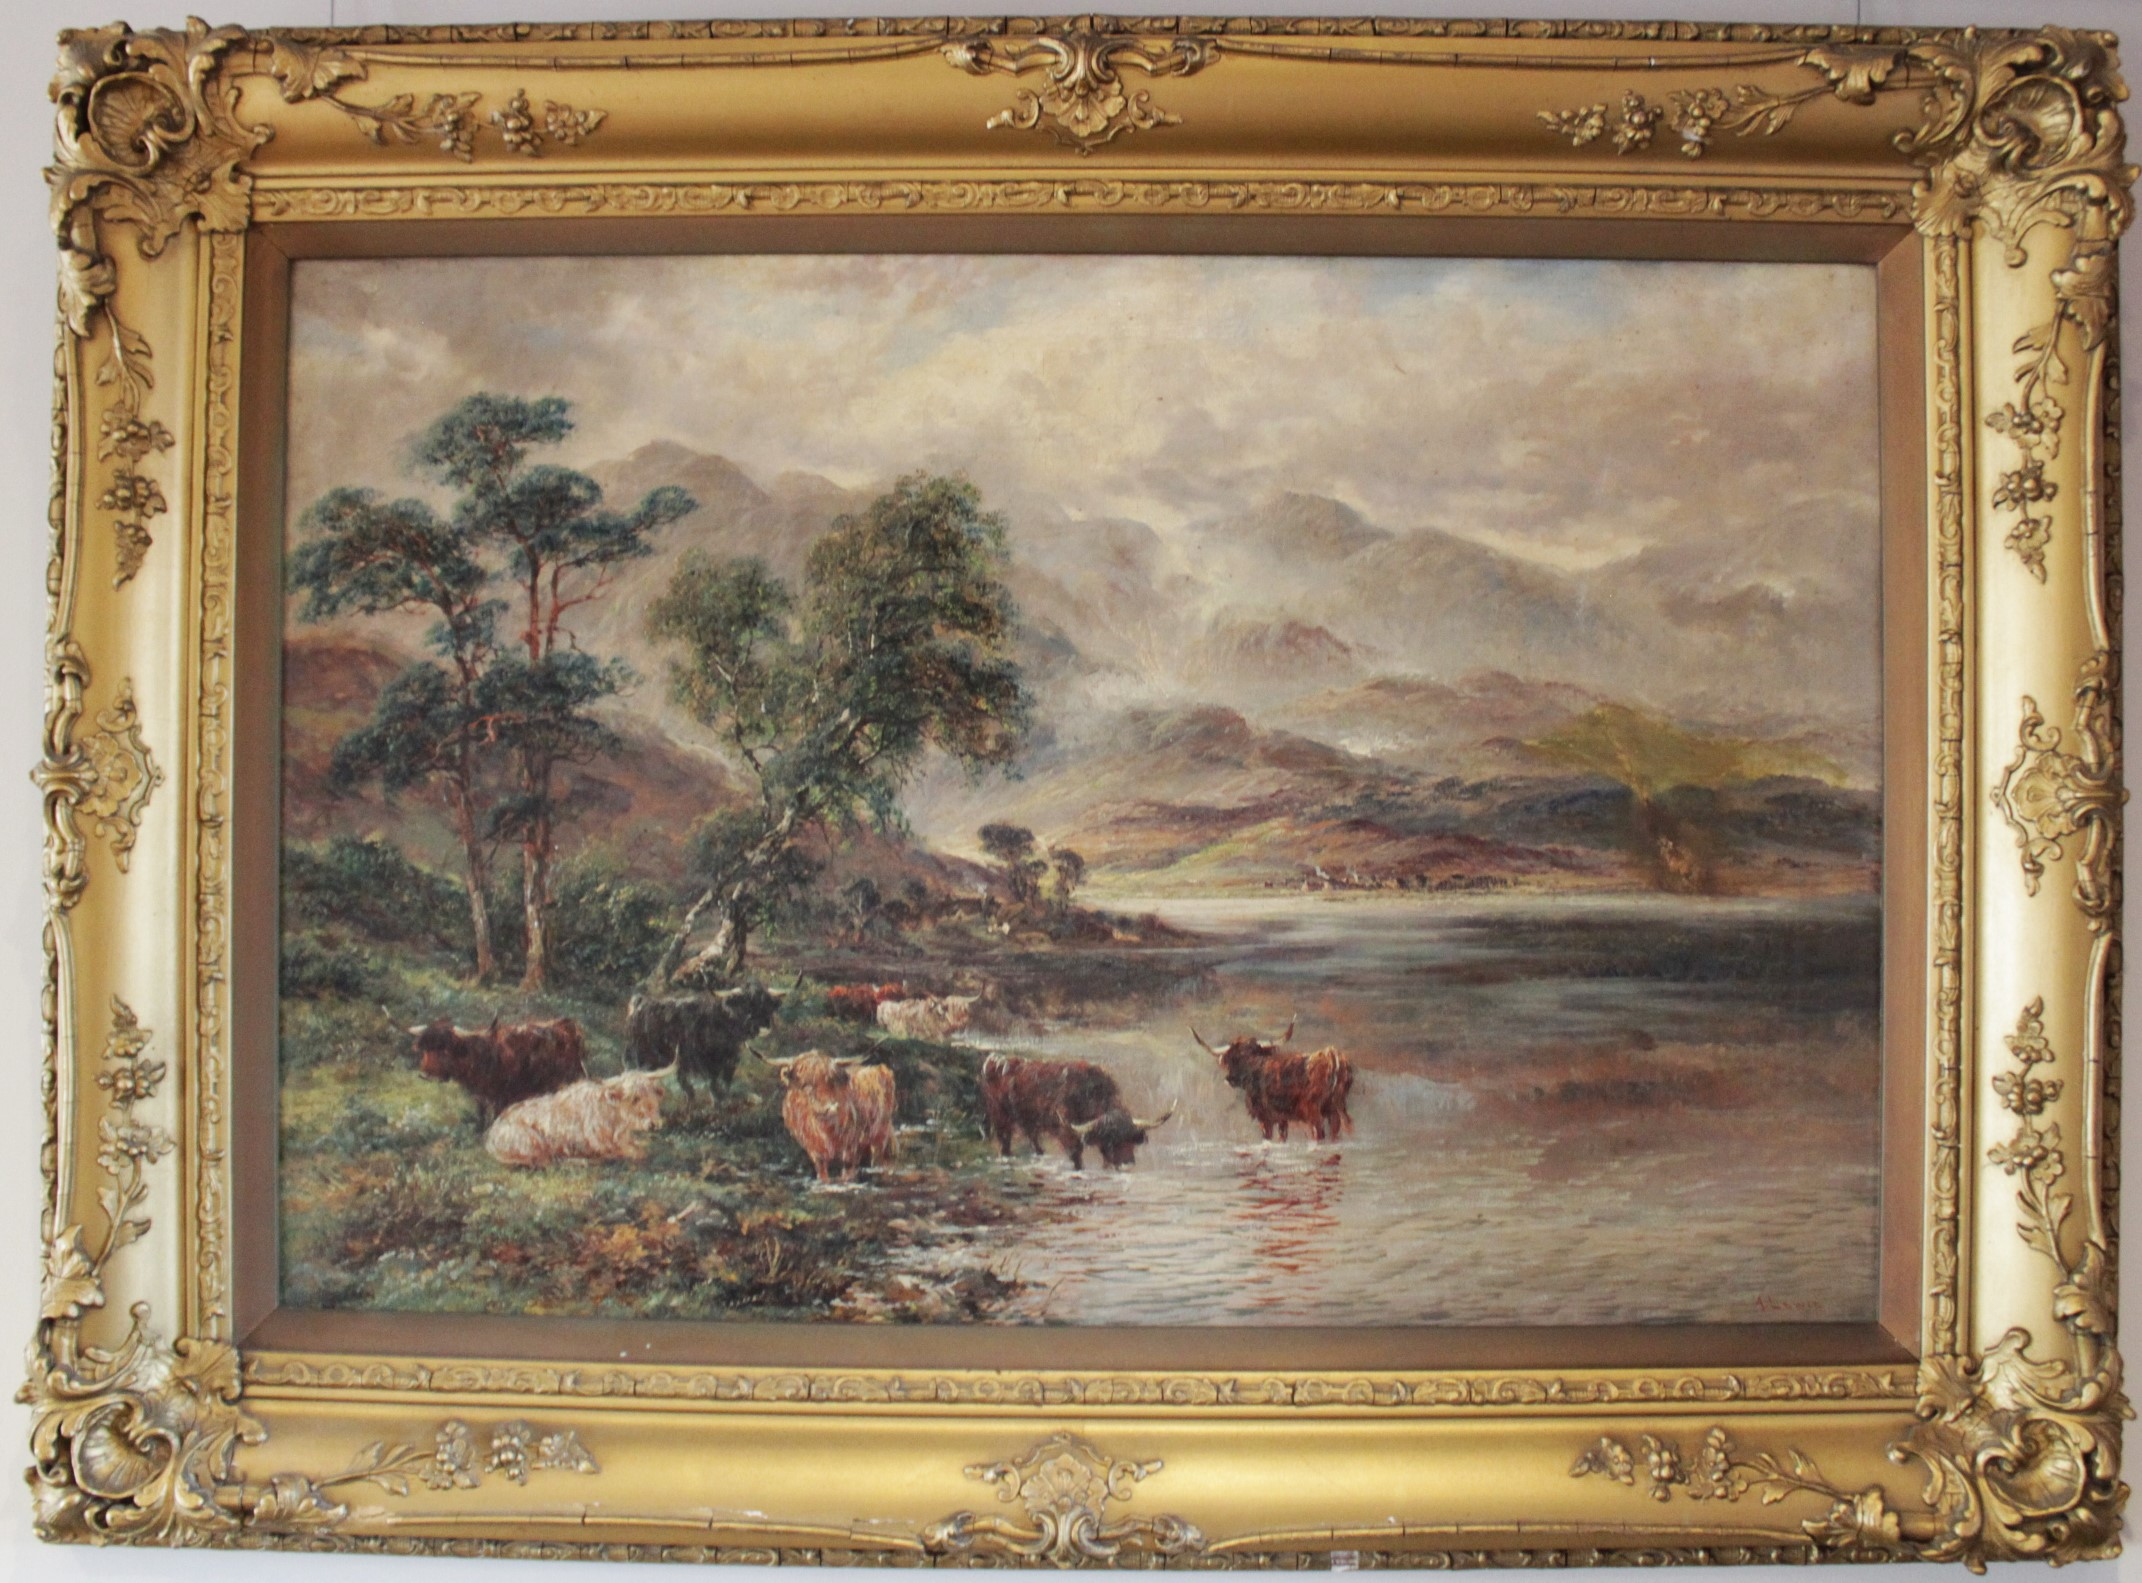 J. Lewis (English school, 19th century), Two mountainous landscapes with highland cattle, Oil on - Image 4 of 4